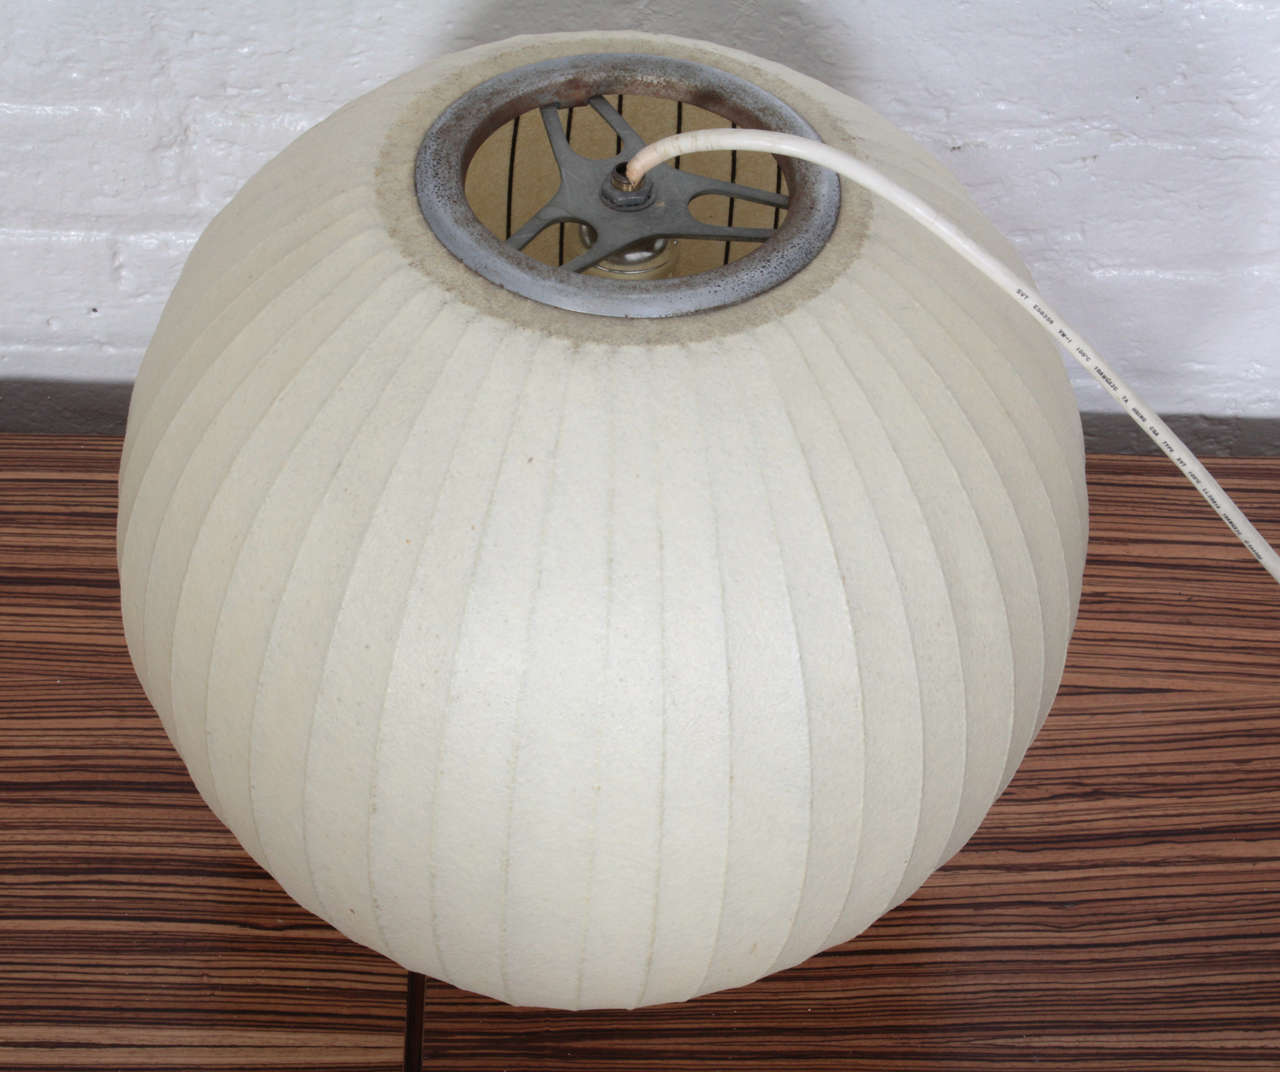 Mid 20th Century George Nelson Fibergl Bubble Lamp Manufactured By Howard Miller For